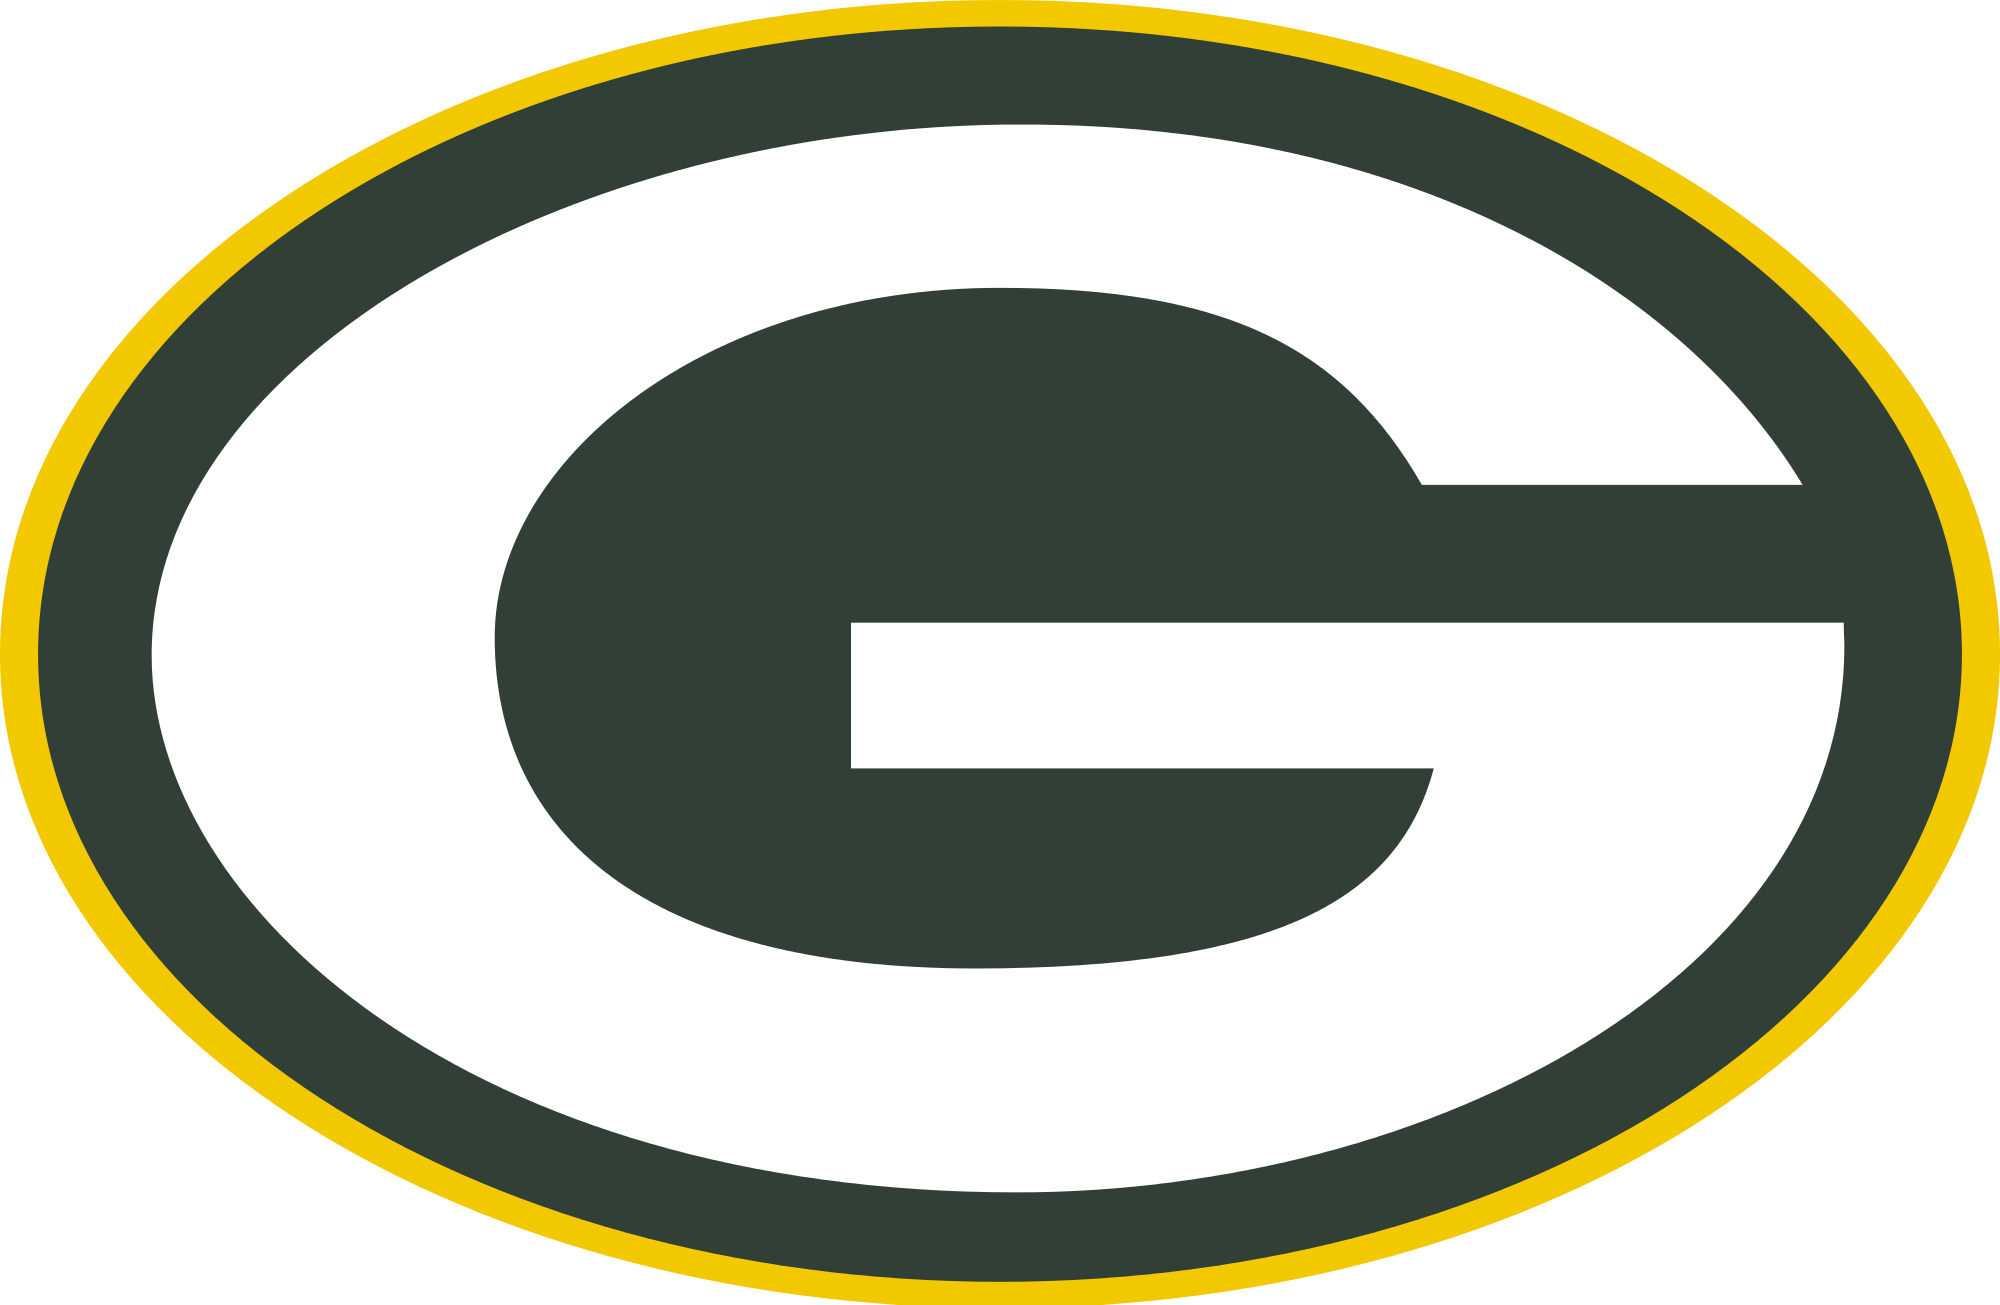 the washington redskins green bay packers png logo #2920